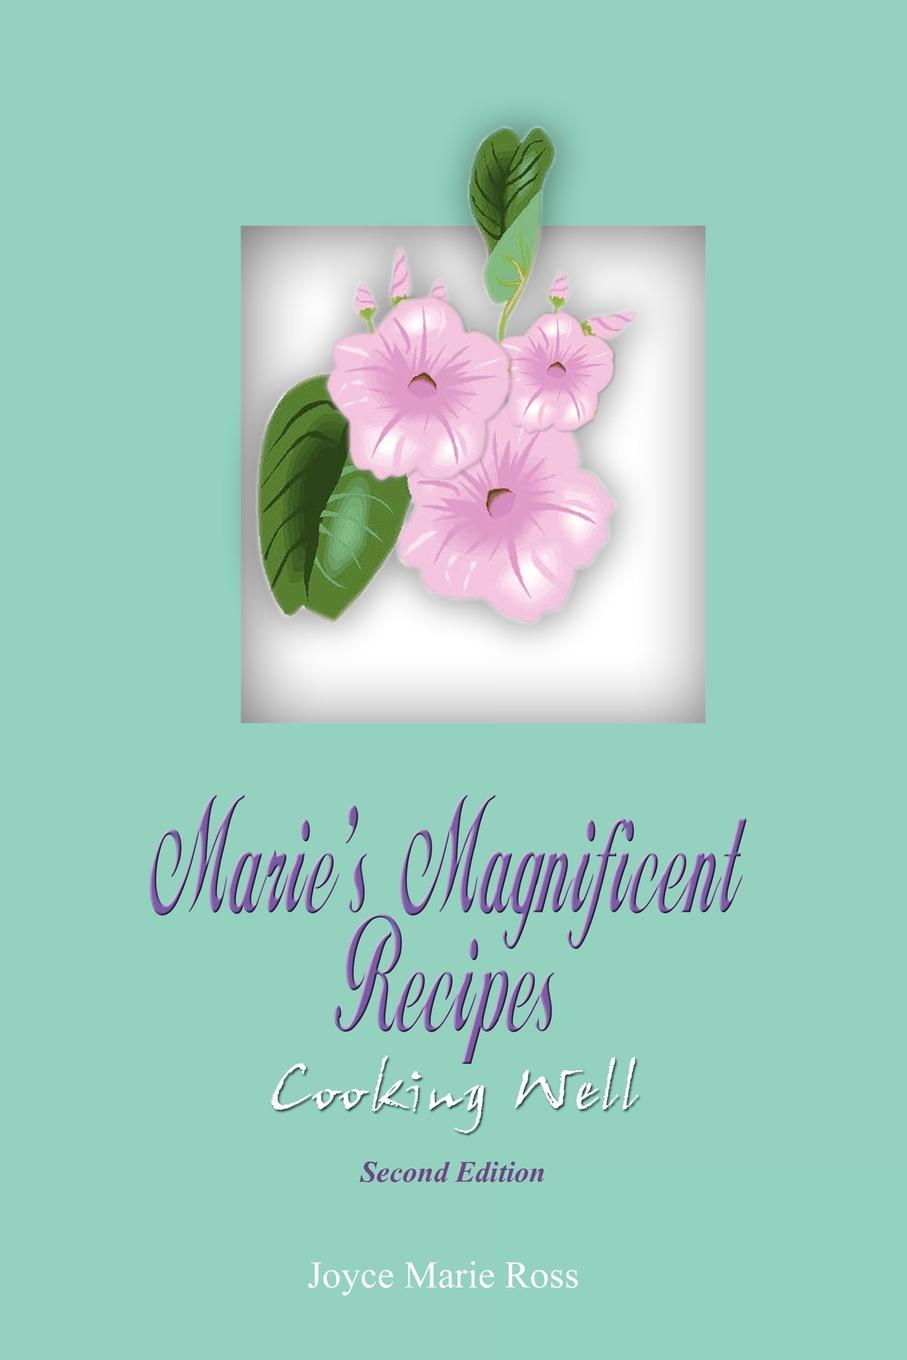 Joyce Marie Ross Marie's Magnificent Recipes. Cooking Well new german cooking recipes for classics revisited